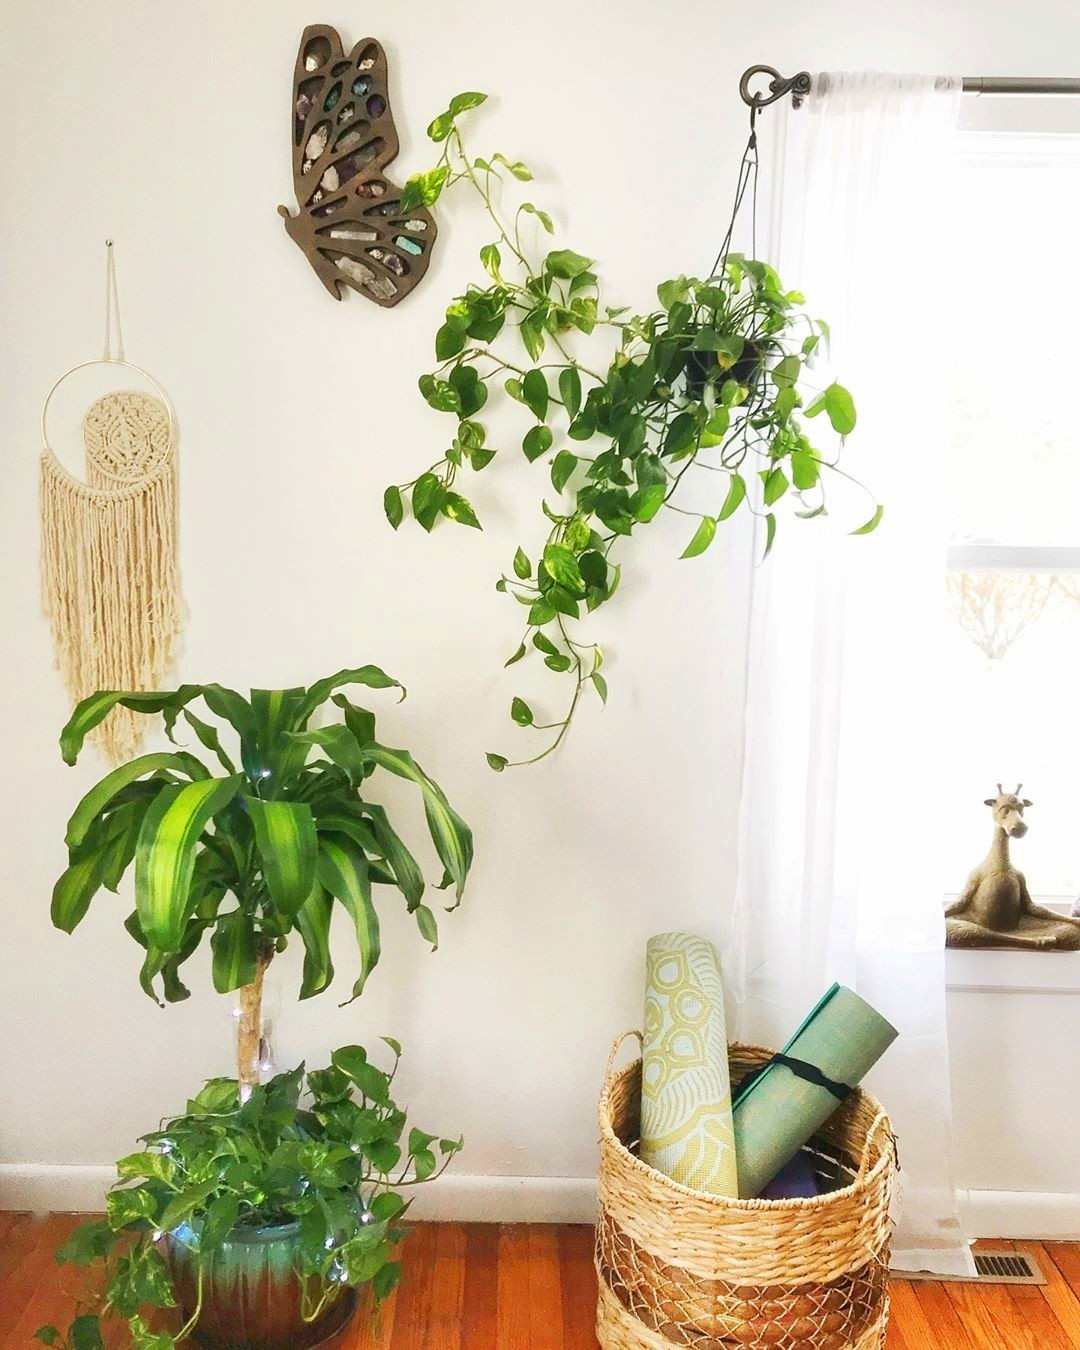 30+ Indoor Decorative Plants For Your Home